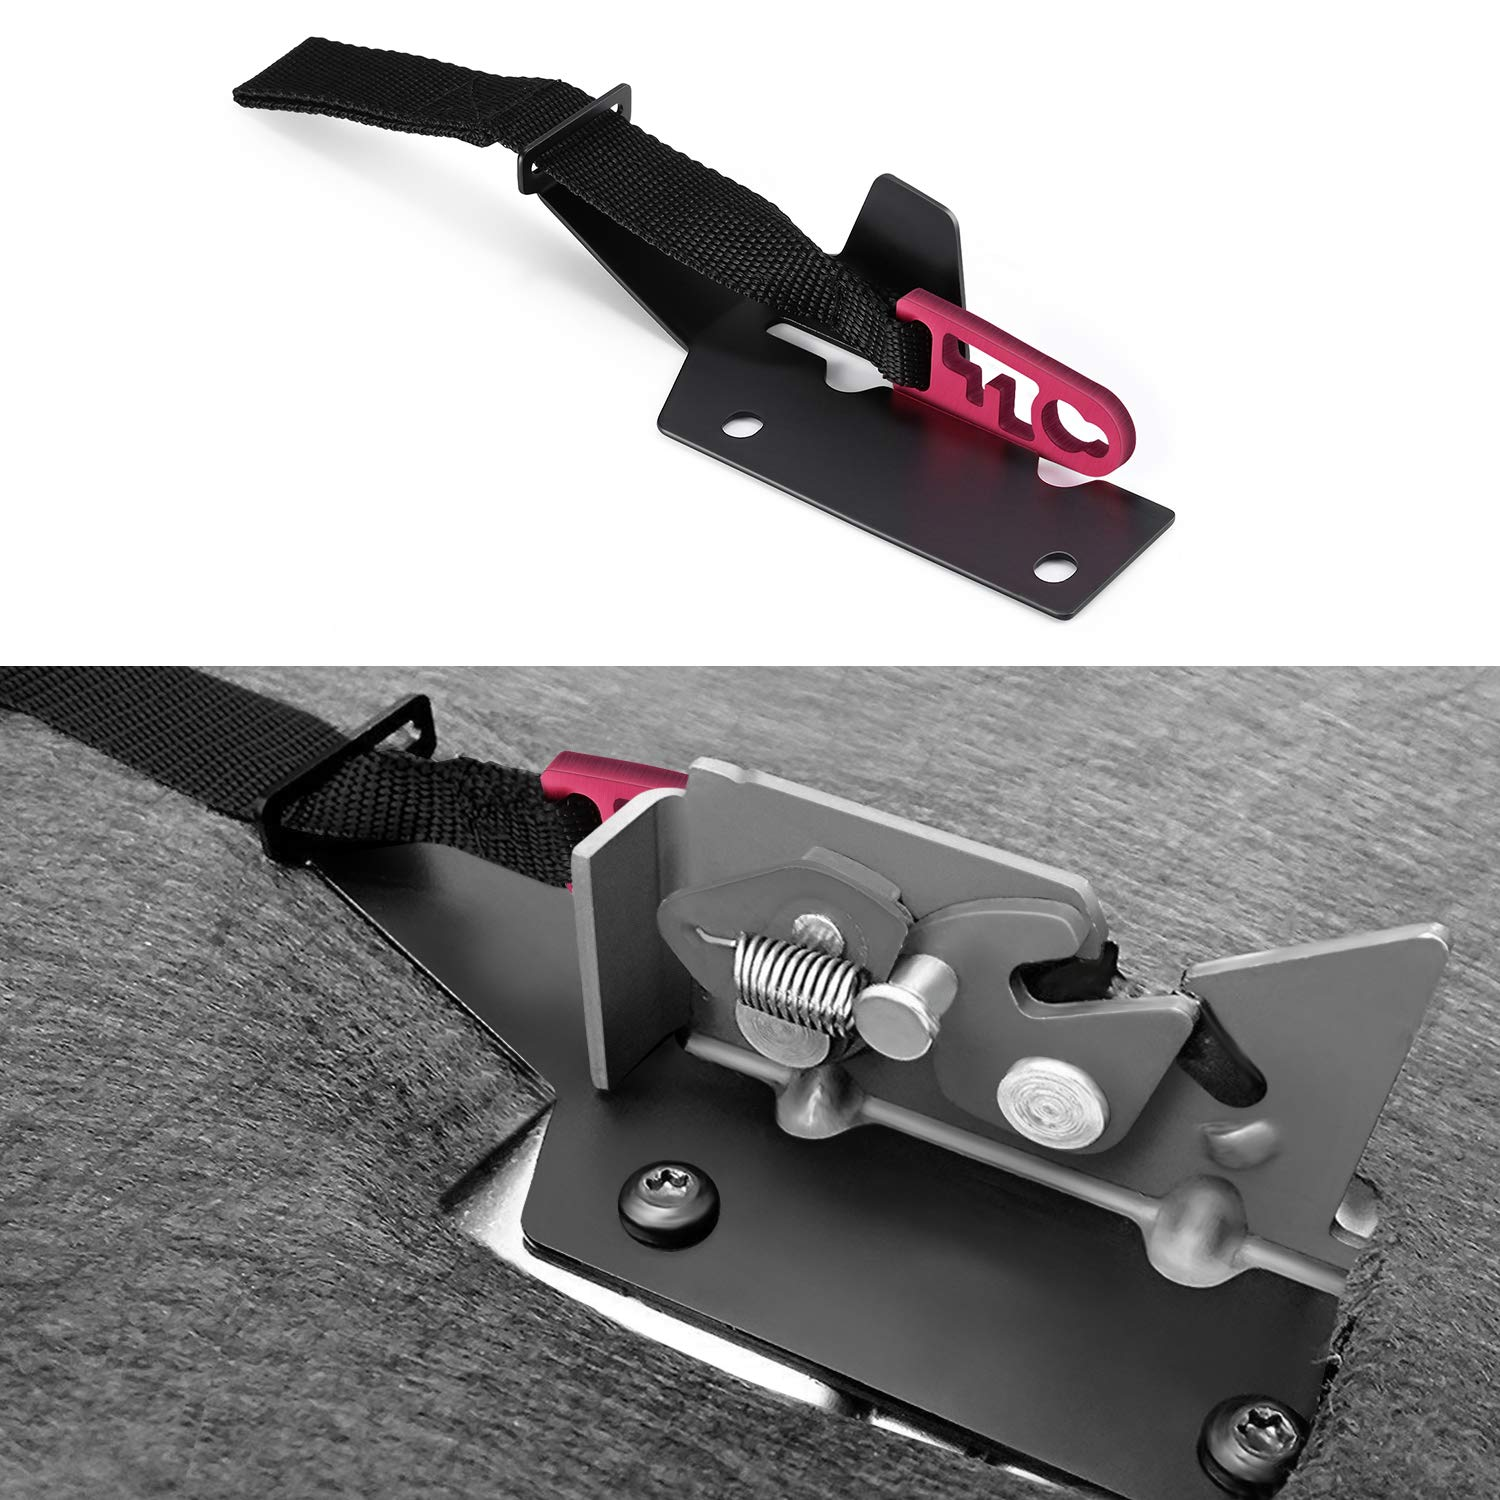 2017-2018 150 //F 350 //F Rear Seat Release Latch for Ford SuperCrew F 2009-2018 2017-2018 //SuperCab F //Raptor F -150 2015-2018 250 2017-2018 AUTOLOVER Rear Seat Release 150